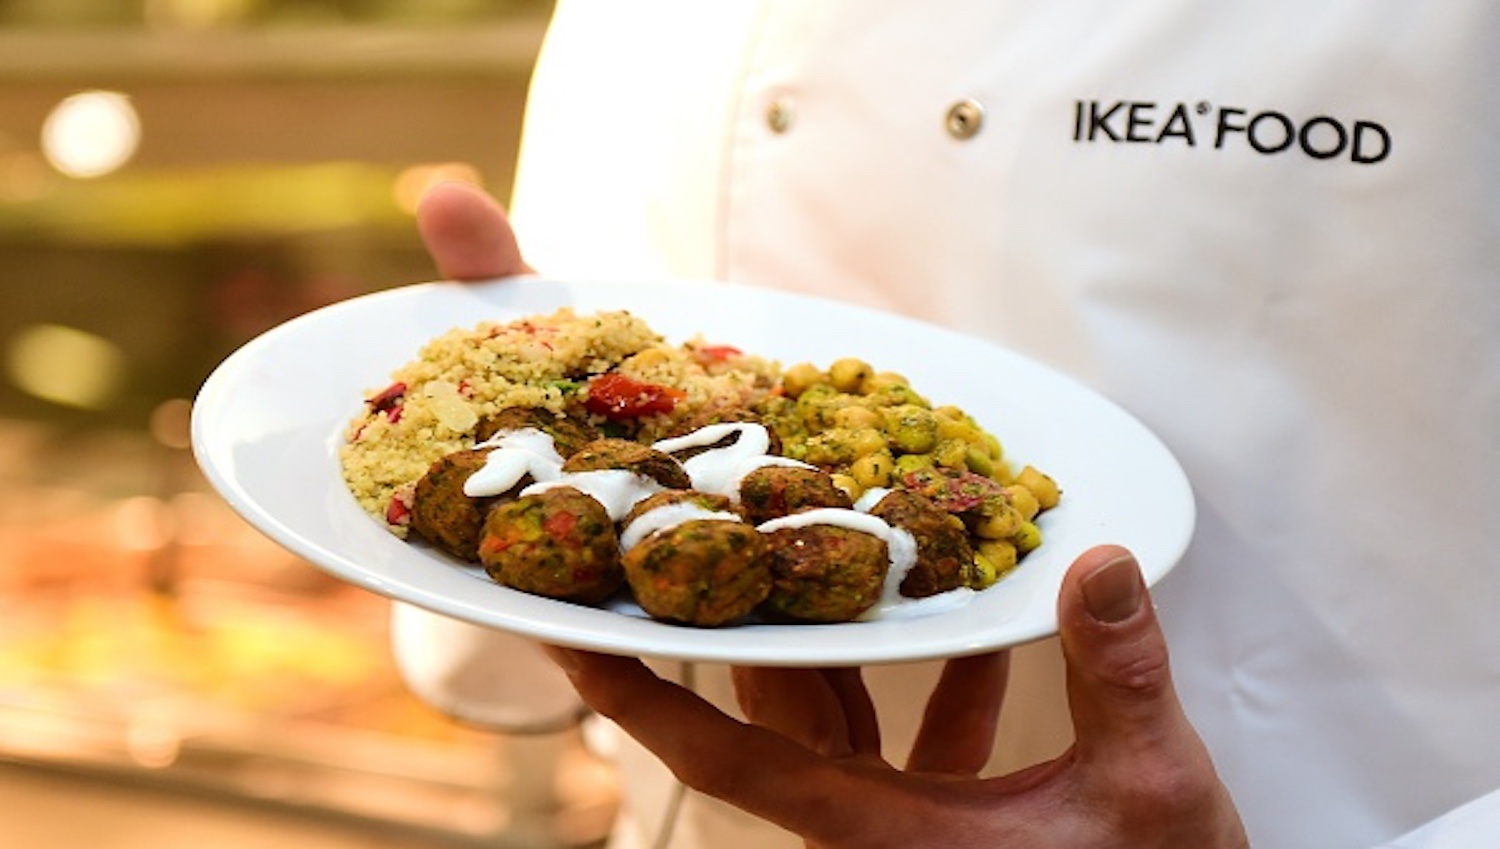 Ikea is Considering Opening Stand-Alone Restaurants